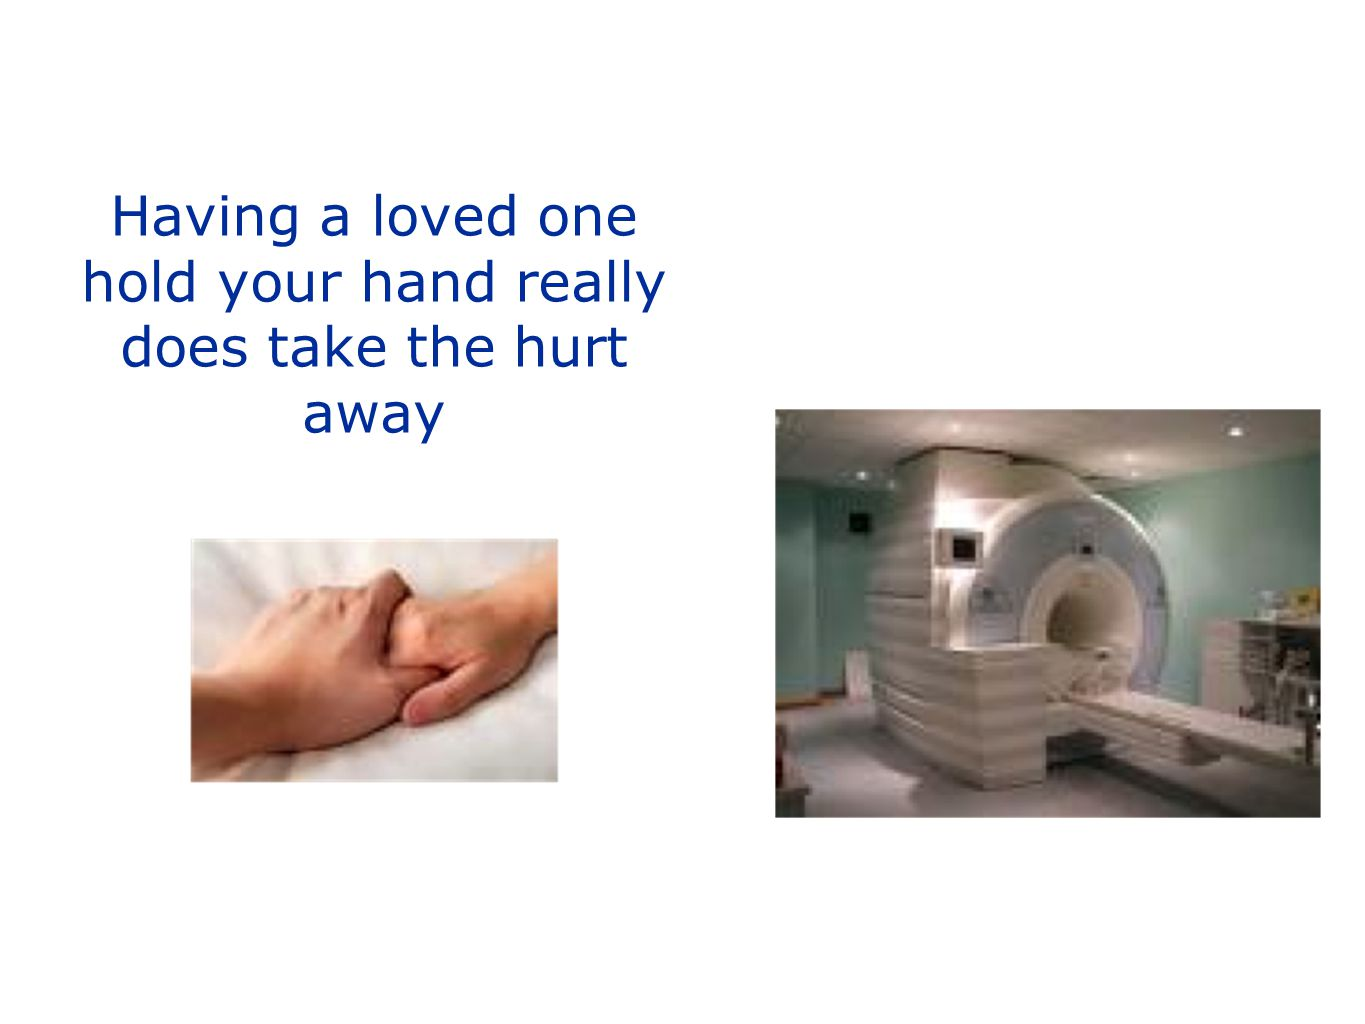 Having a loved one hold your hand really does take the hurt away